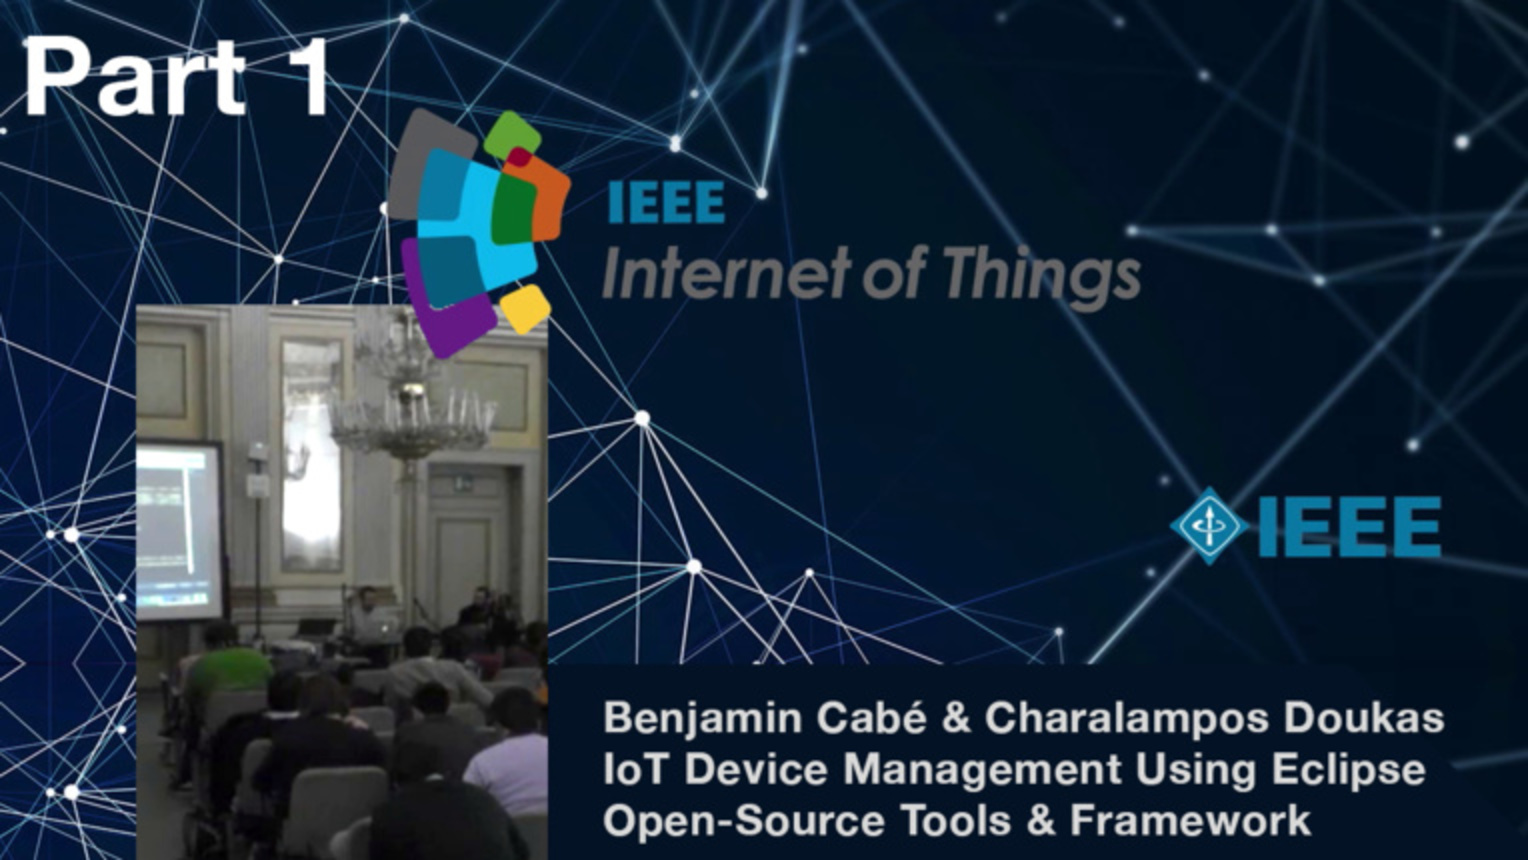 Part 1: IoT Device Management: Using Eclipse IoT Open-Source Tools and Frameworks - Benjamin Cabe and Charalampos Doukas, IEEE WF-IoT 2015